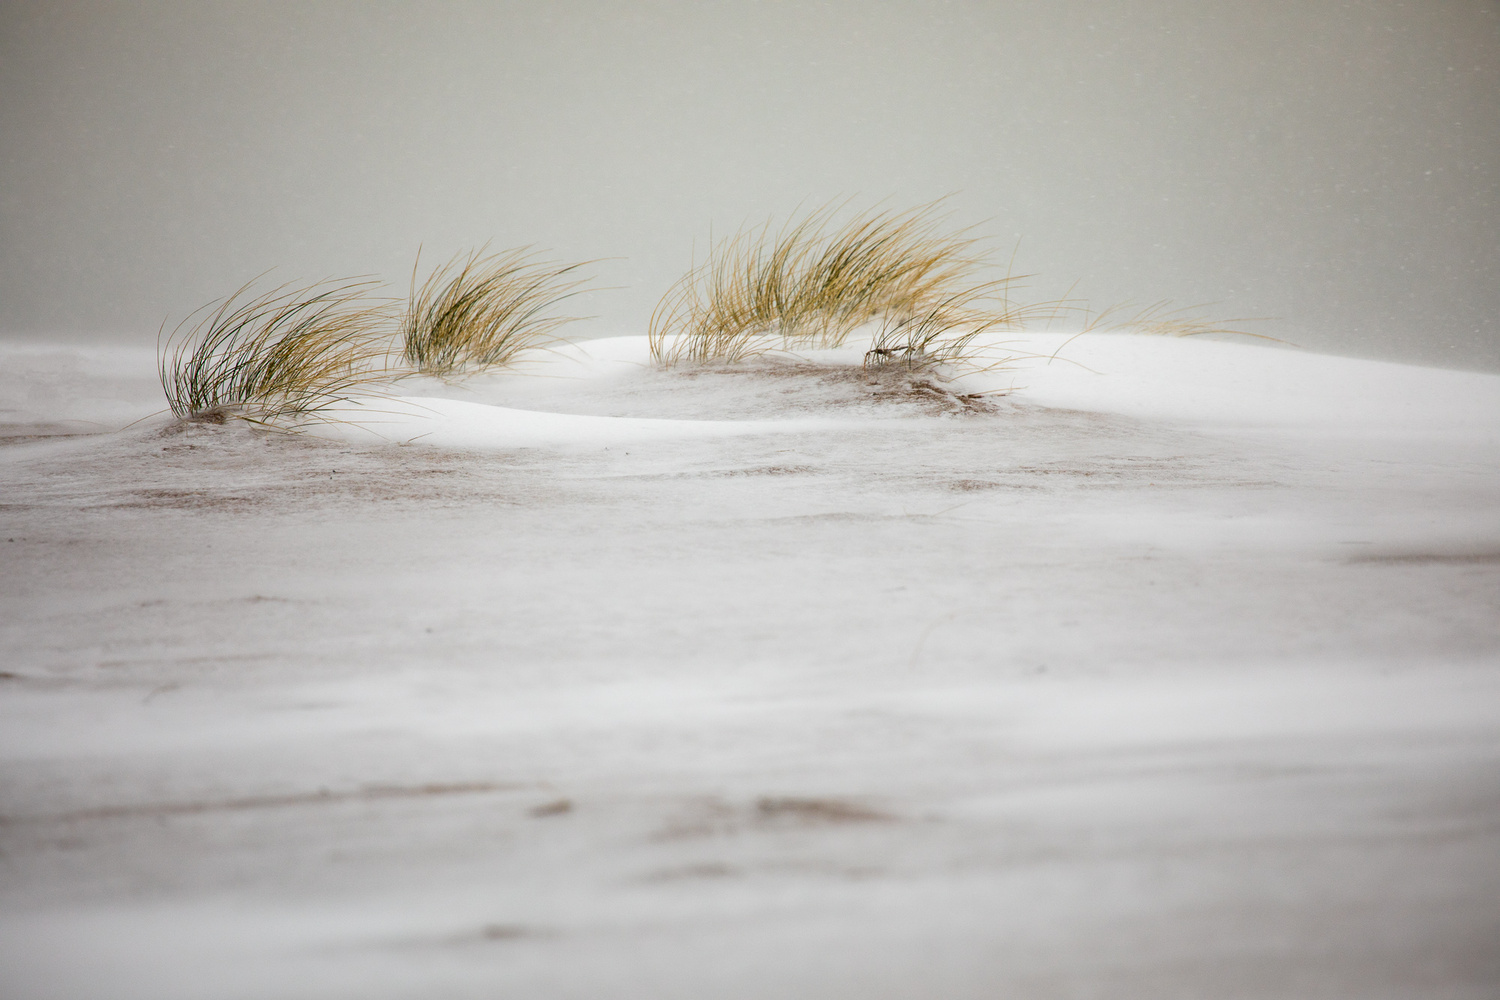 snow in the dunes by YL Photographie